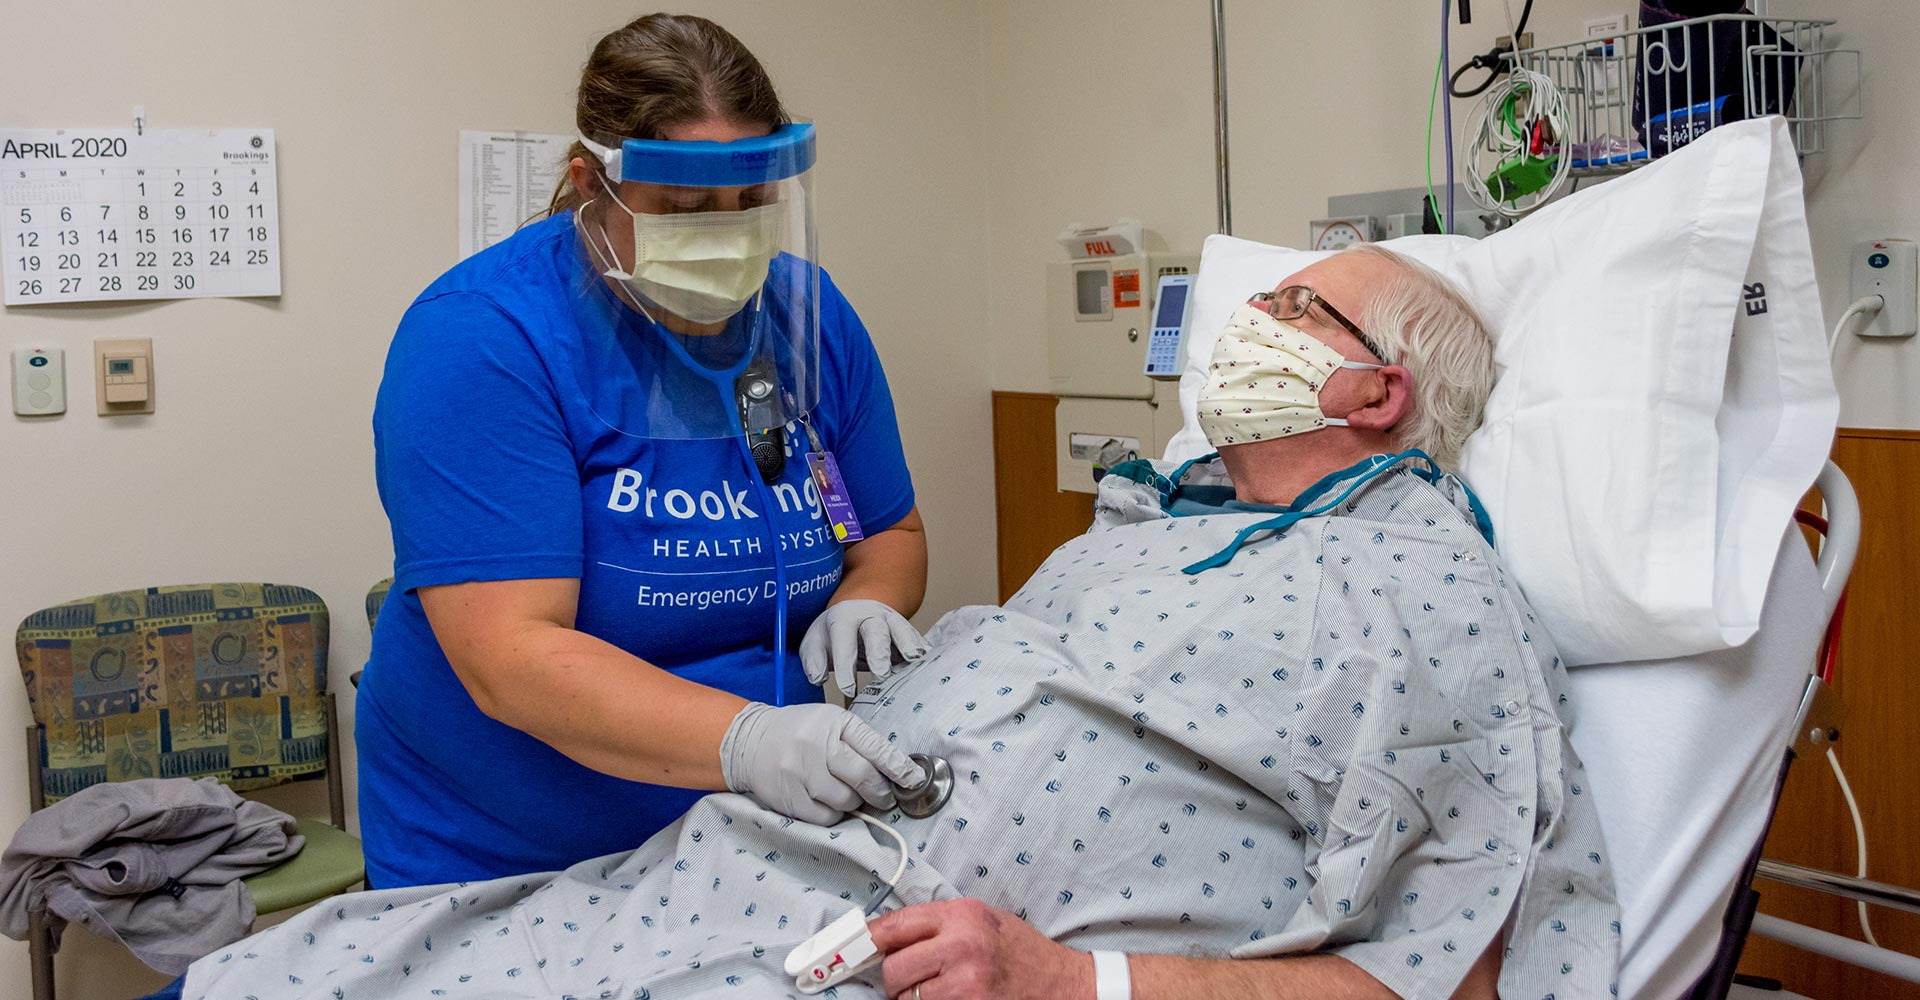 Emergency Room nurse listening to a patient's stomach using a stethoscope while wearing the appropriate personal protective equipment